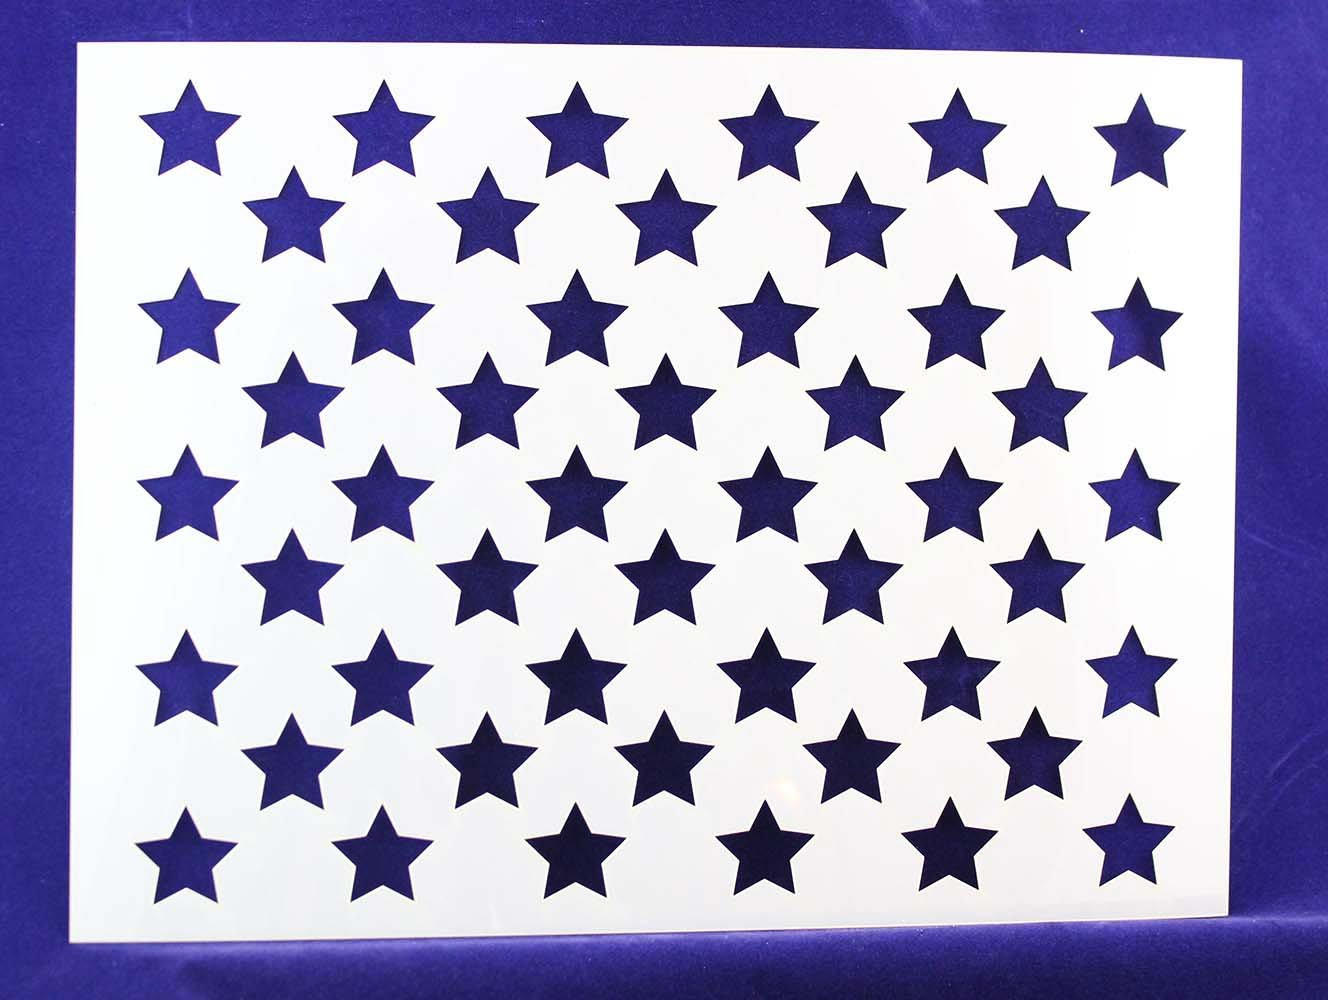 50 Star Field Stencil 14 Mil -14.8W x11.1H - Painting /Crafts/ Templates TCR Engraving & Graphics ms104